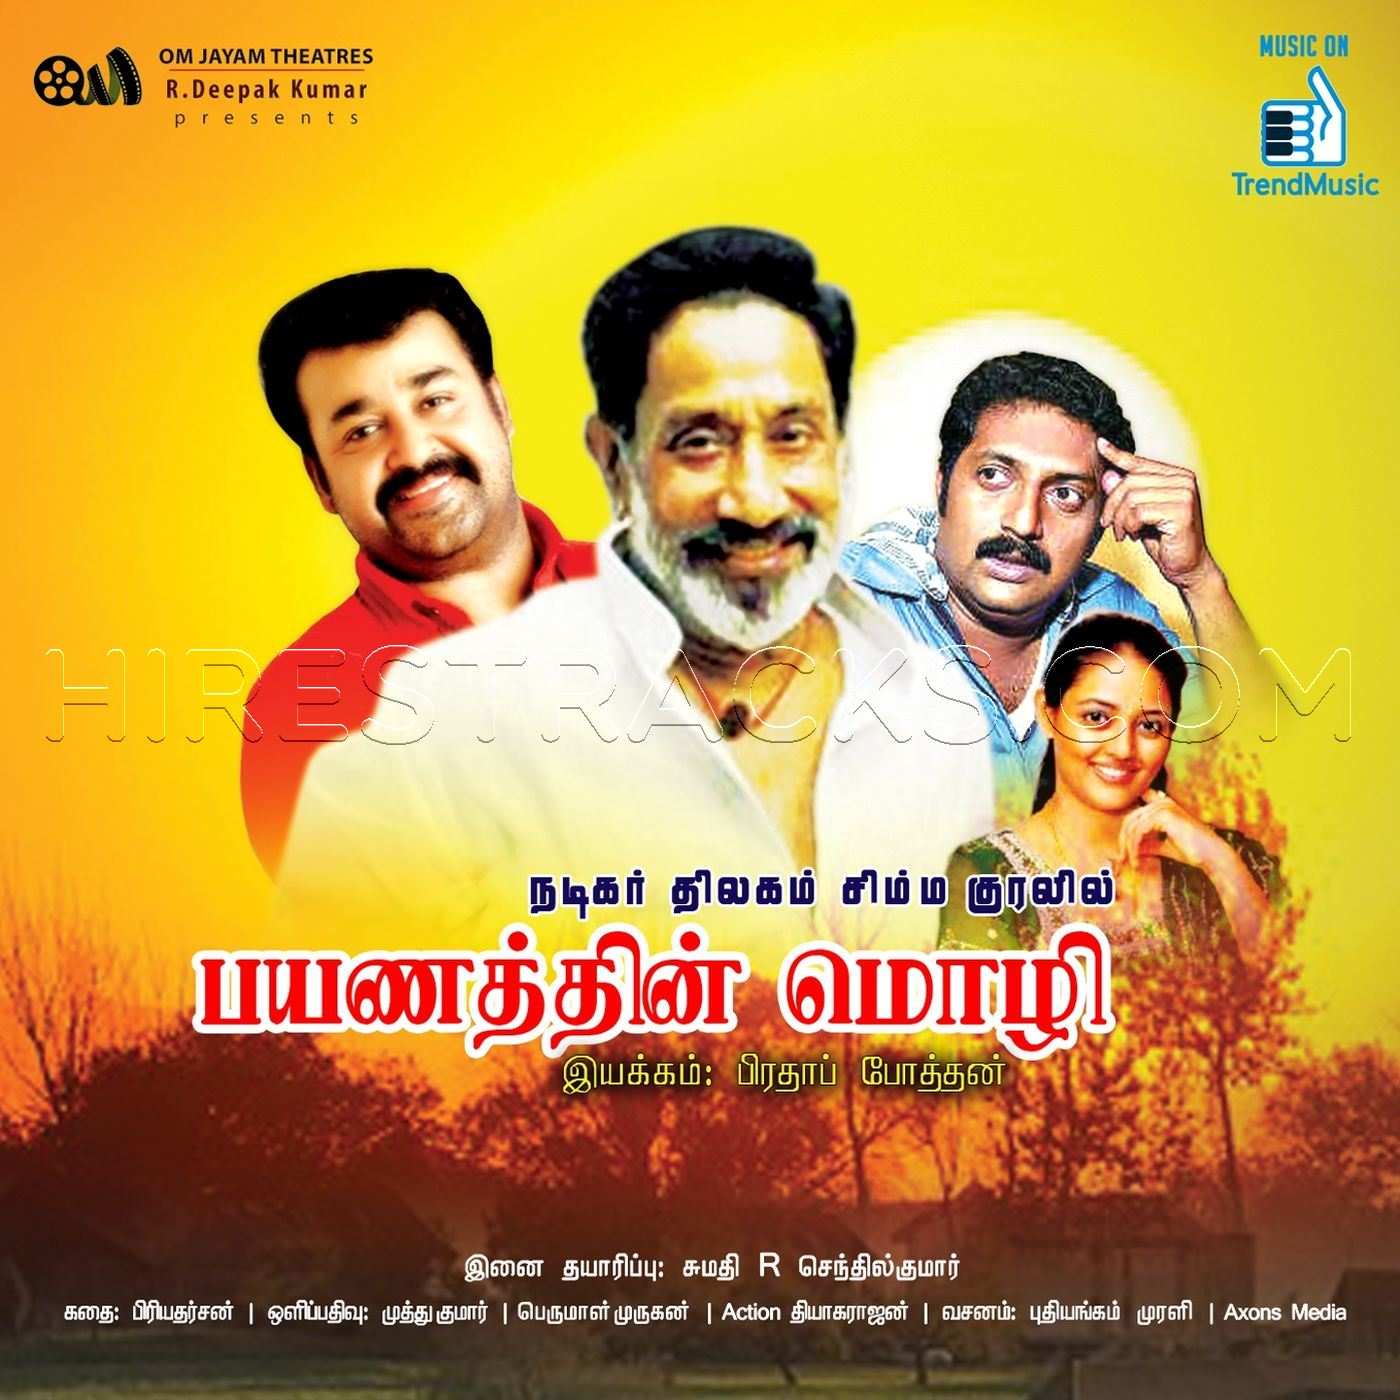 Payanathin Mozhi (2017) (Ilaiyaraaja) (Trend Music) [Digital-DL-FLAC]